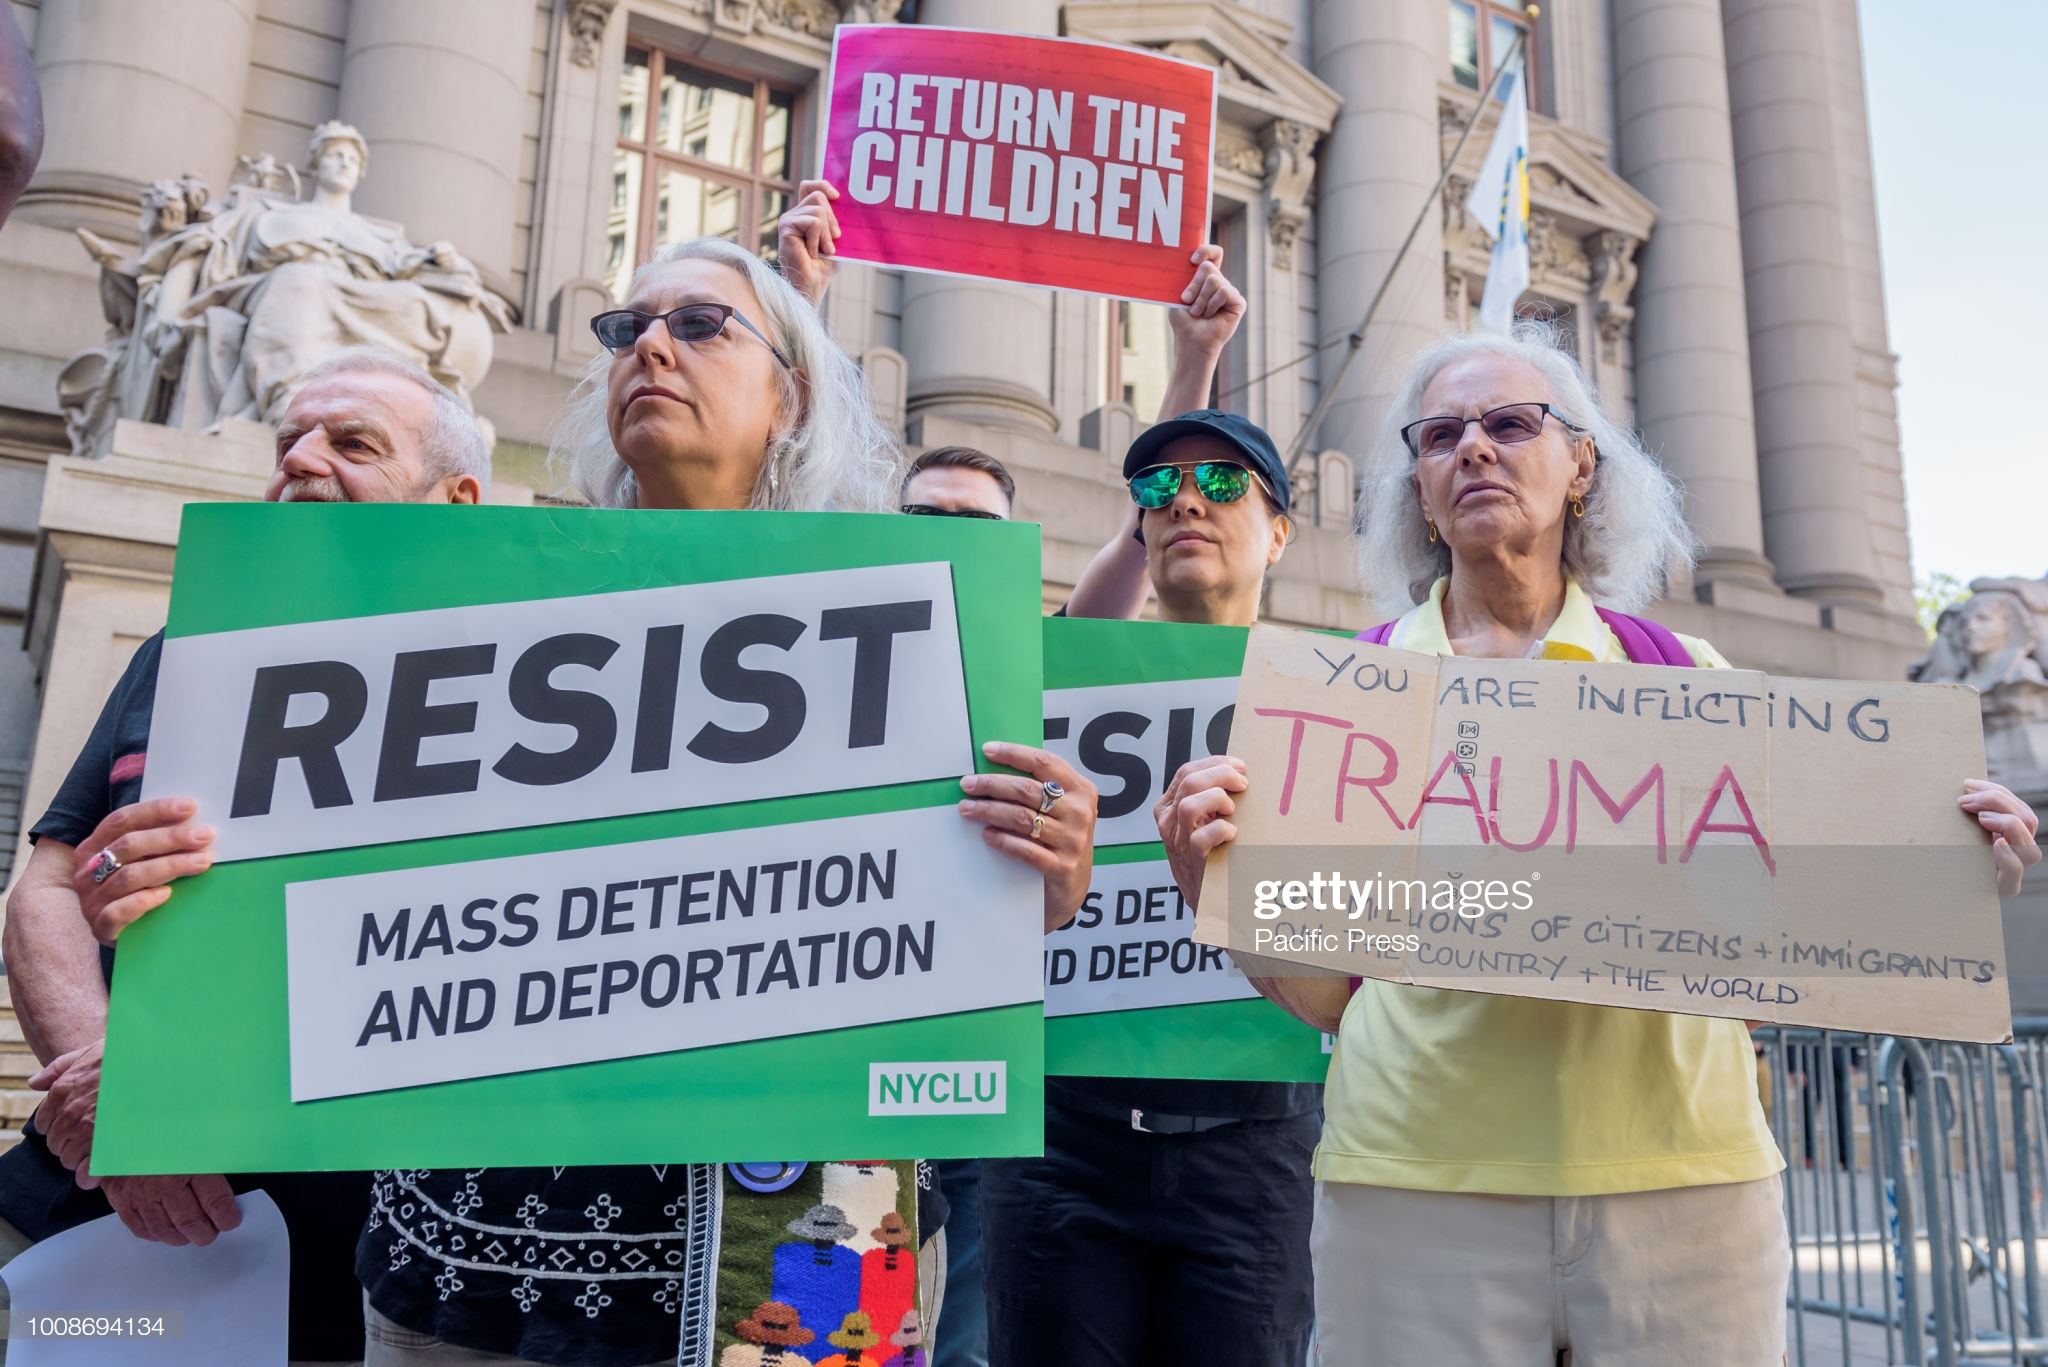 ALEXANDER HAMILTON CUSTOM HOUSE, NEW YORK, UNITED STATES - 2018/07/31: Immigration advocates seeking to Abolish ICE gathered outside the Alexander Hamilton Custom House in Bowling Green where DHS Secretary Kirstjen Nielsen and Vice President Mike Pence attended a DHS conference, to demand that Secretary Nielsen and VP Pence reunite the families cruelly separated through anti-immigrant policies. (Photo by Erik McGregor/Pacific Press/LightRocket via Getty Images)